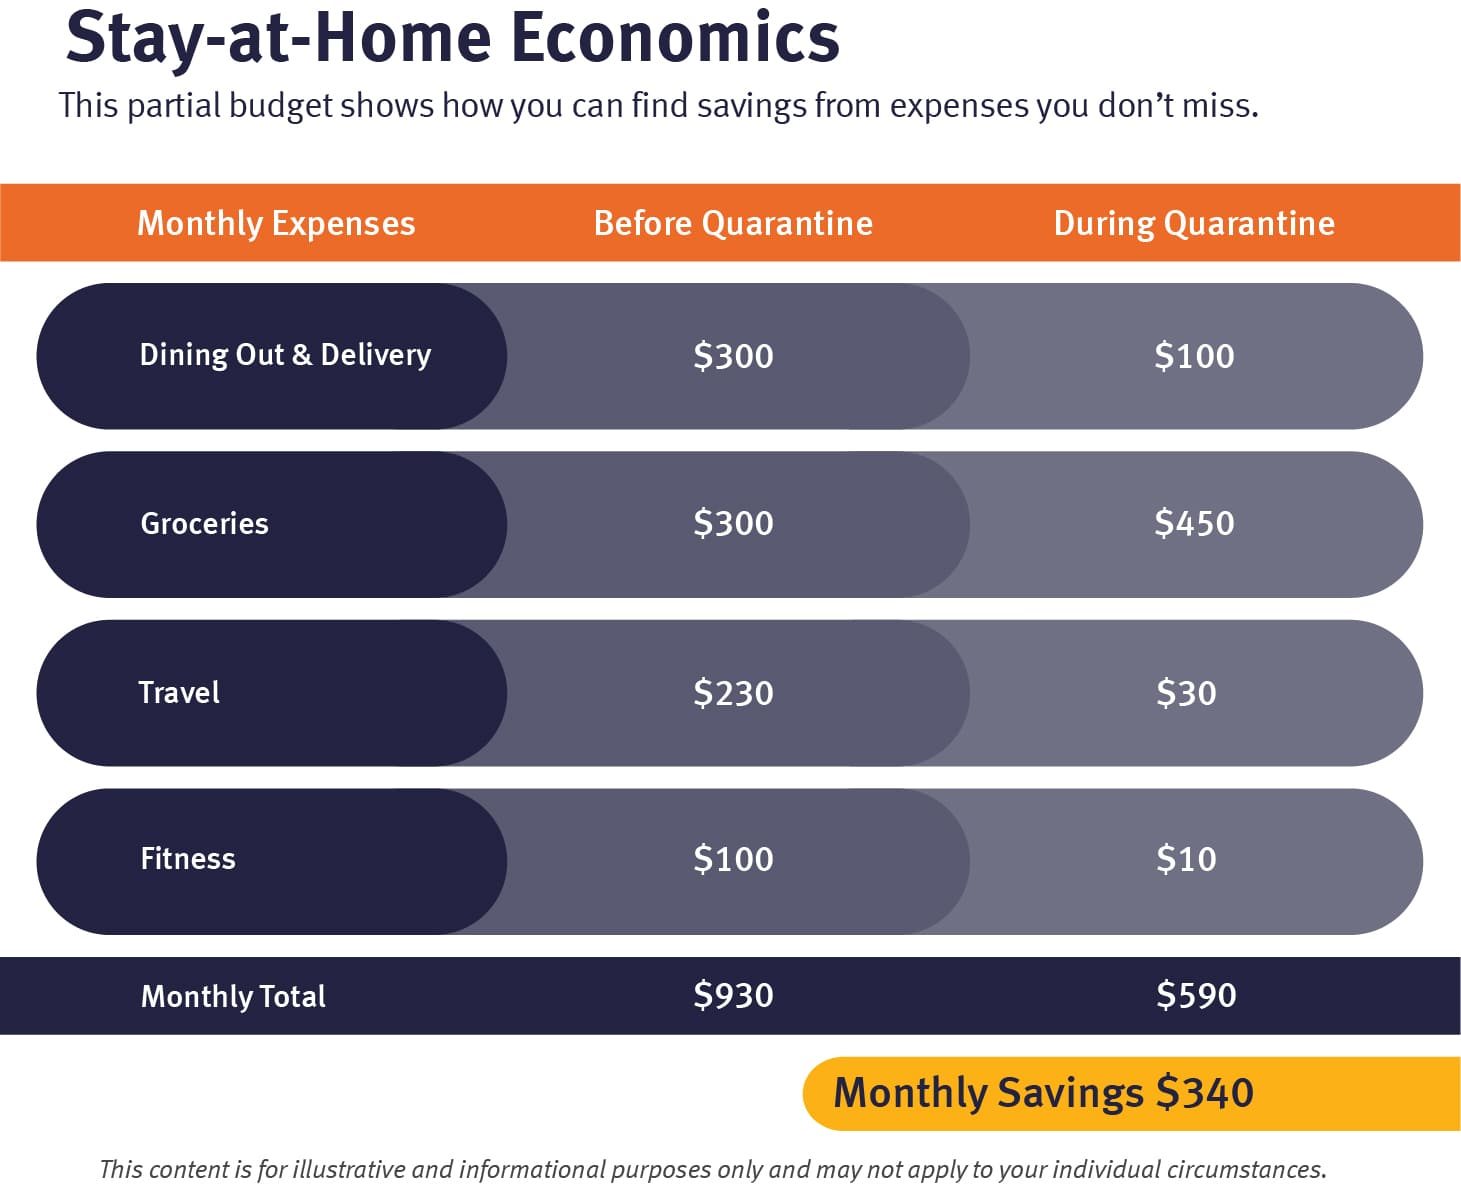 When creating a household budget, look for savings from expenses you don't miss in quarantine.